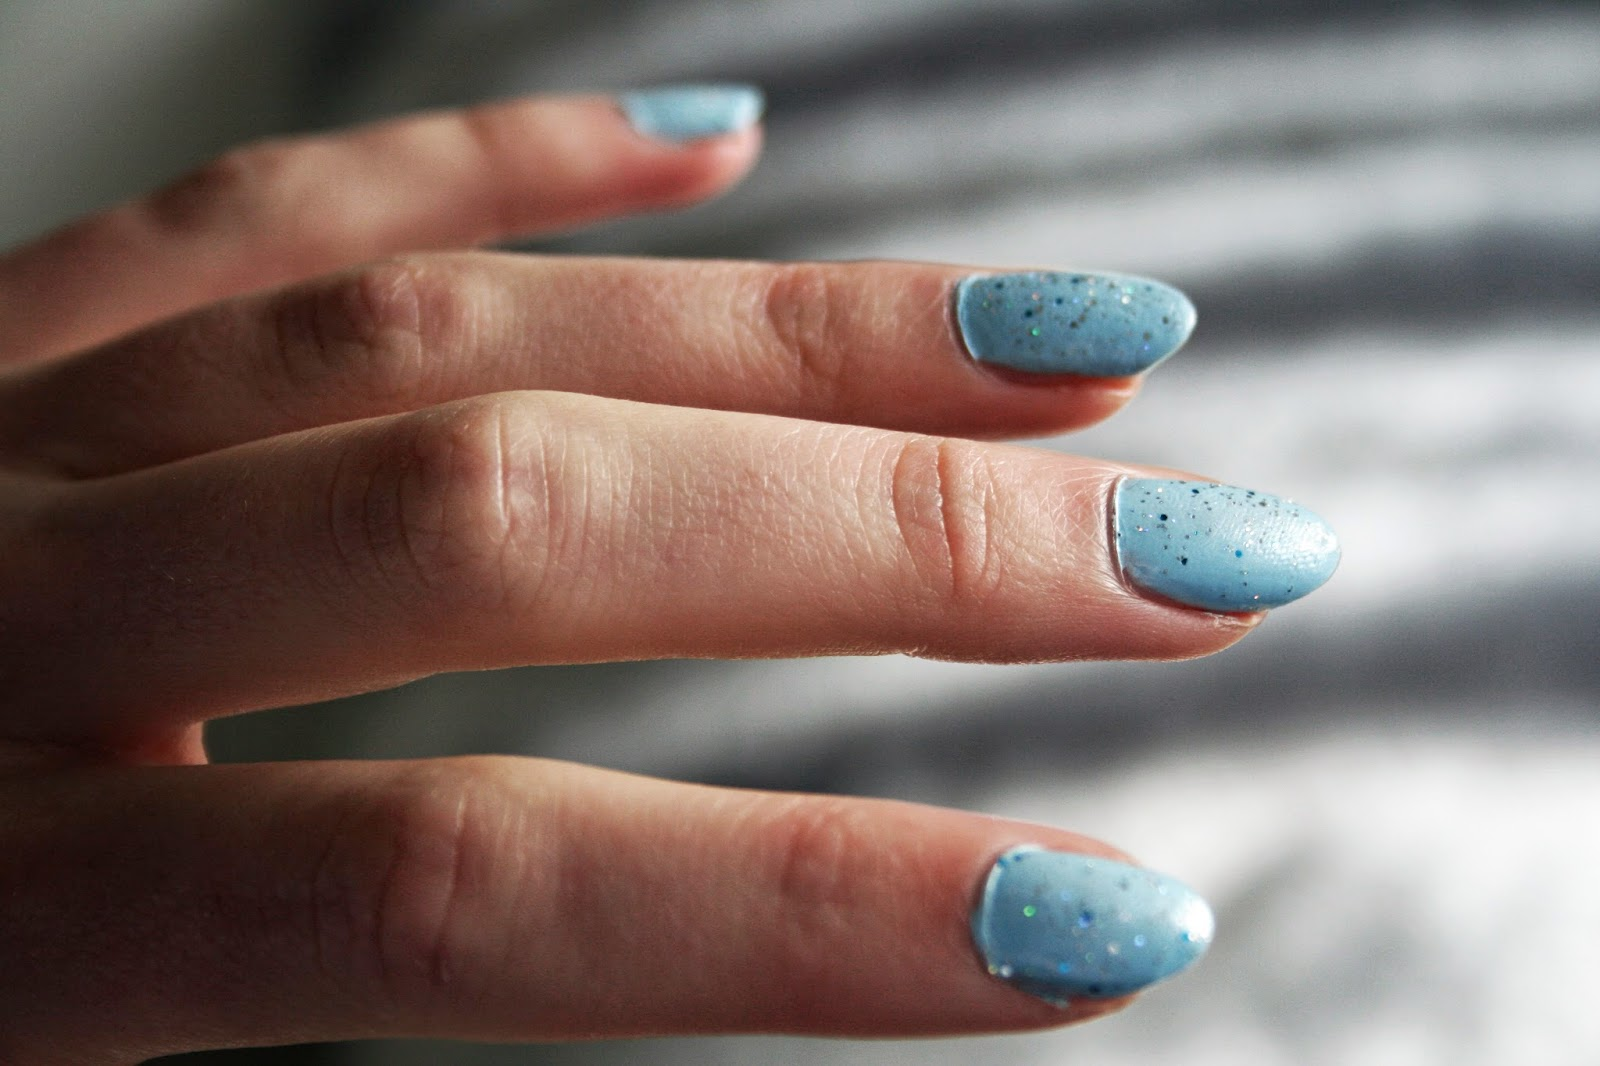 Frozen Inspired Nails and Managing Theatre Flashbacks